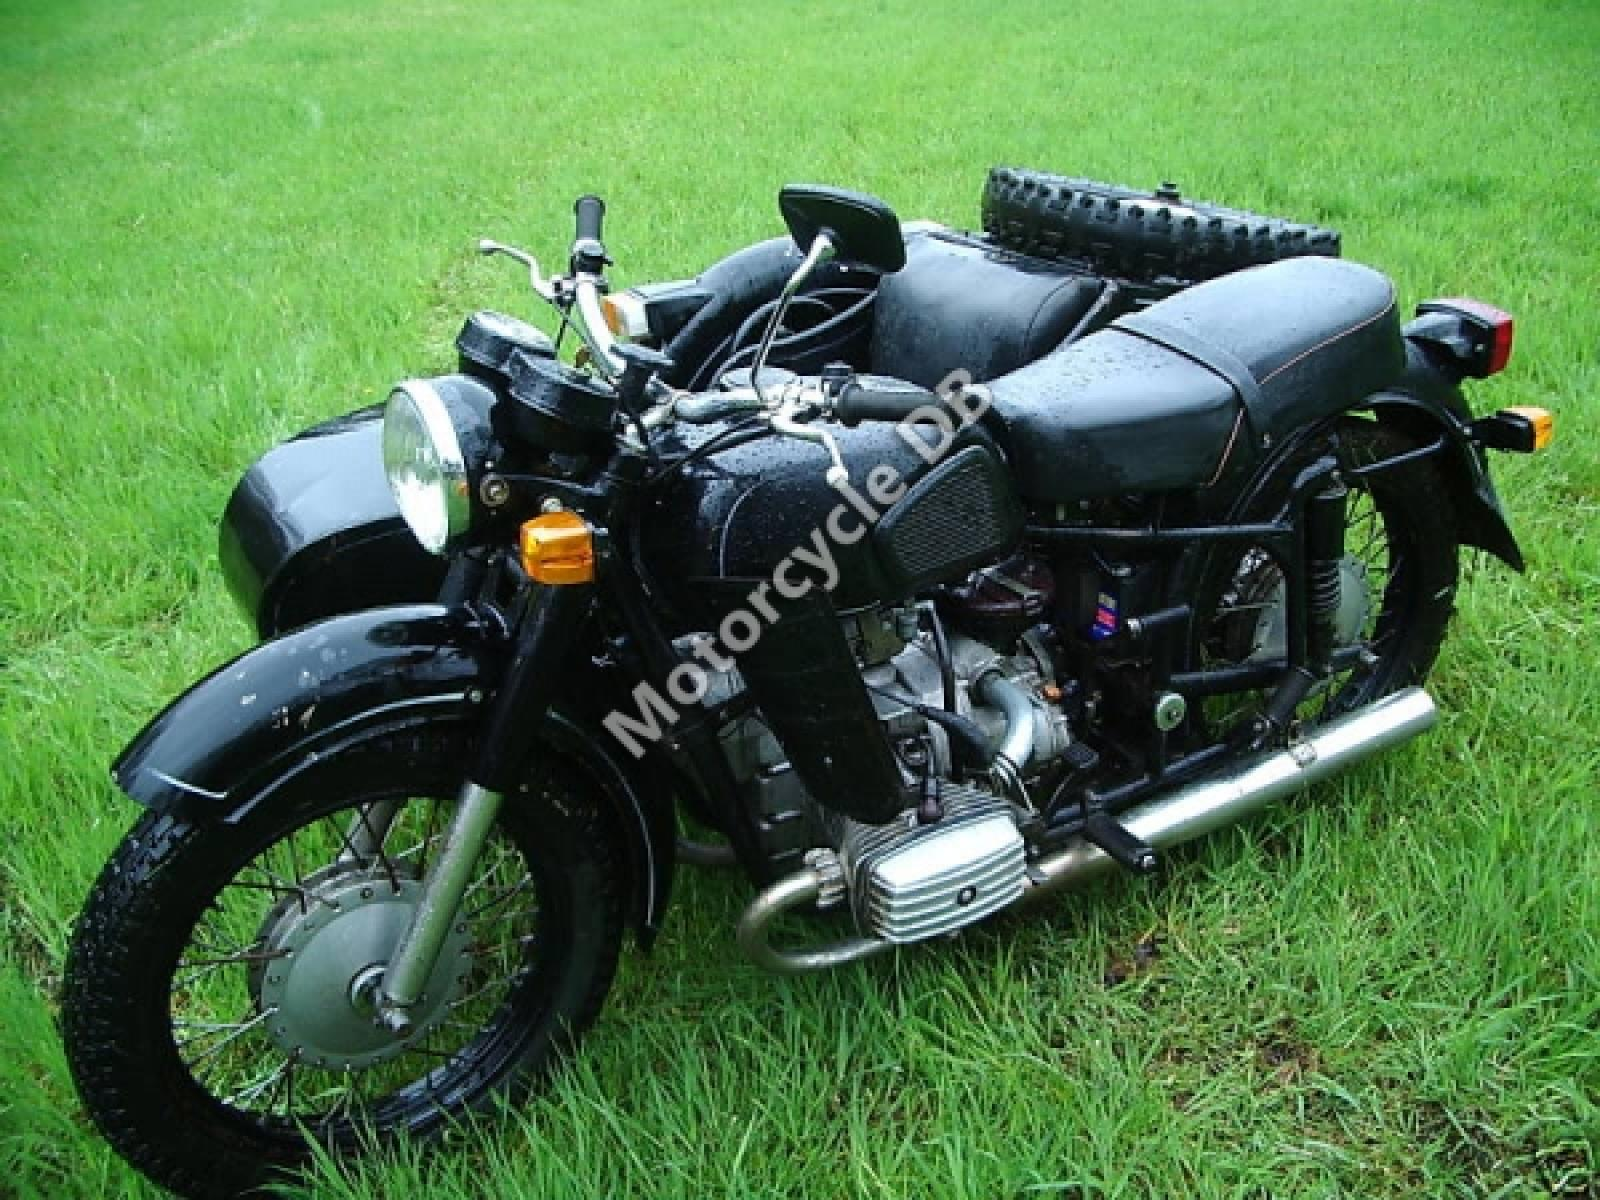 Dnepr MT 10 with sidecar 1976 images #70177